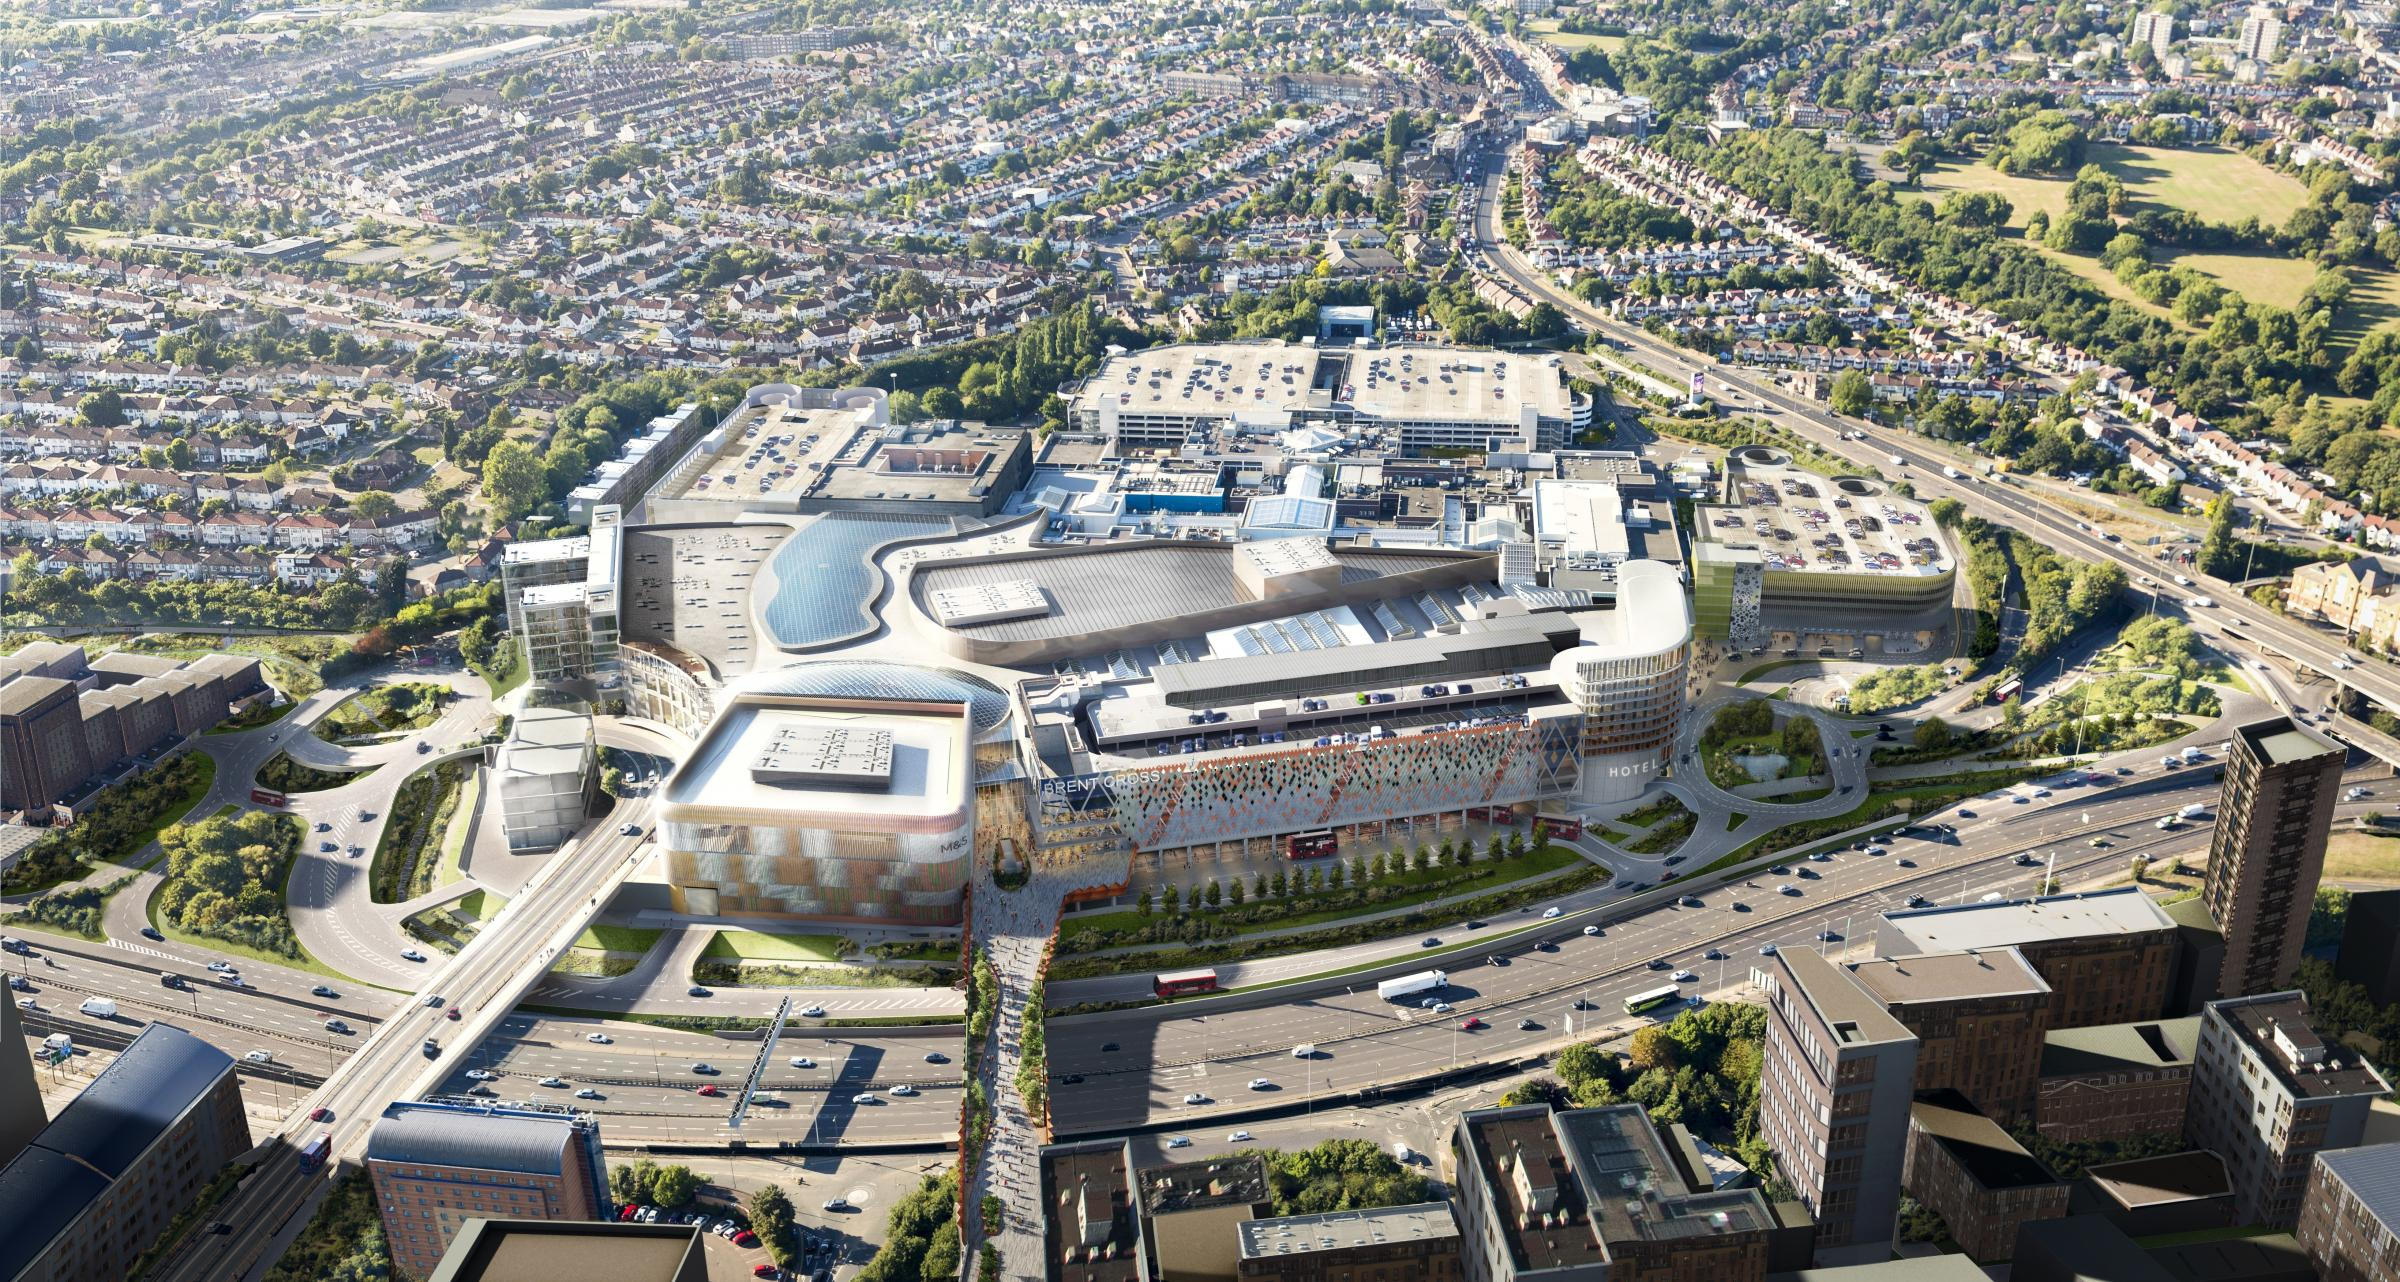 Brent Cross Cricklewood regeneration the subject of public meeting